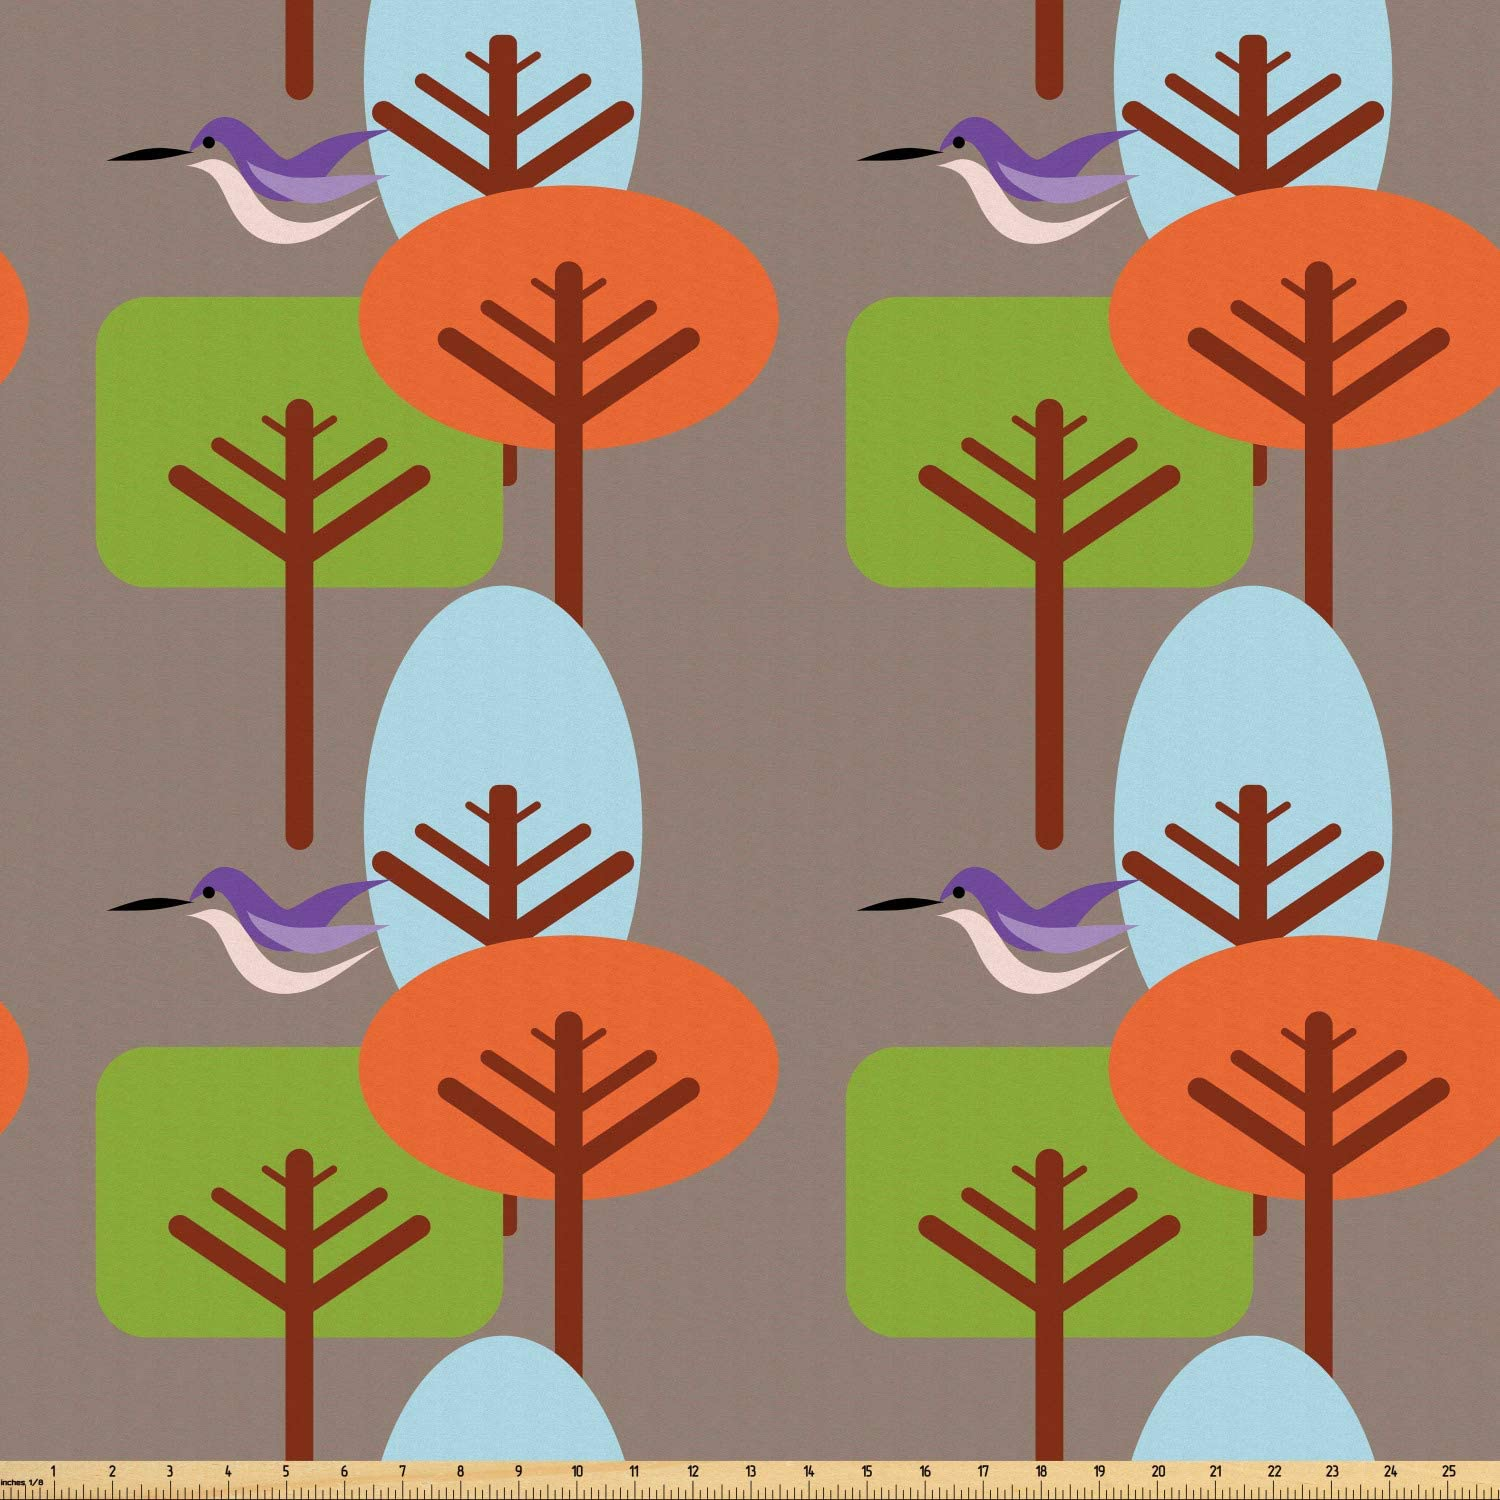 Ambesonne Mid Century Fabric by The Yard, Flying Hummingbird and Colorful Trees Simple Nature Modernist Art Approach, Microfiber Fabric for Arts and Crafts Textiles & Decor, 3 Yards, Umber Green